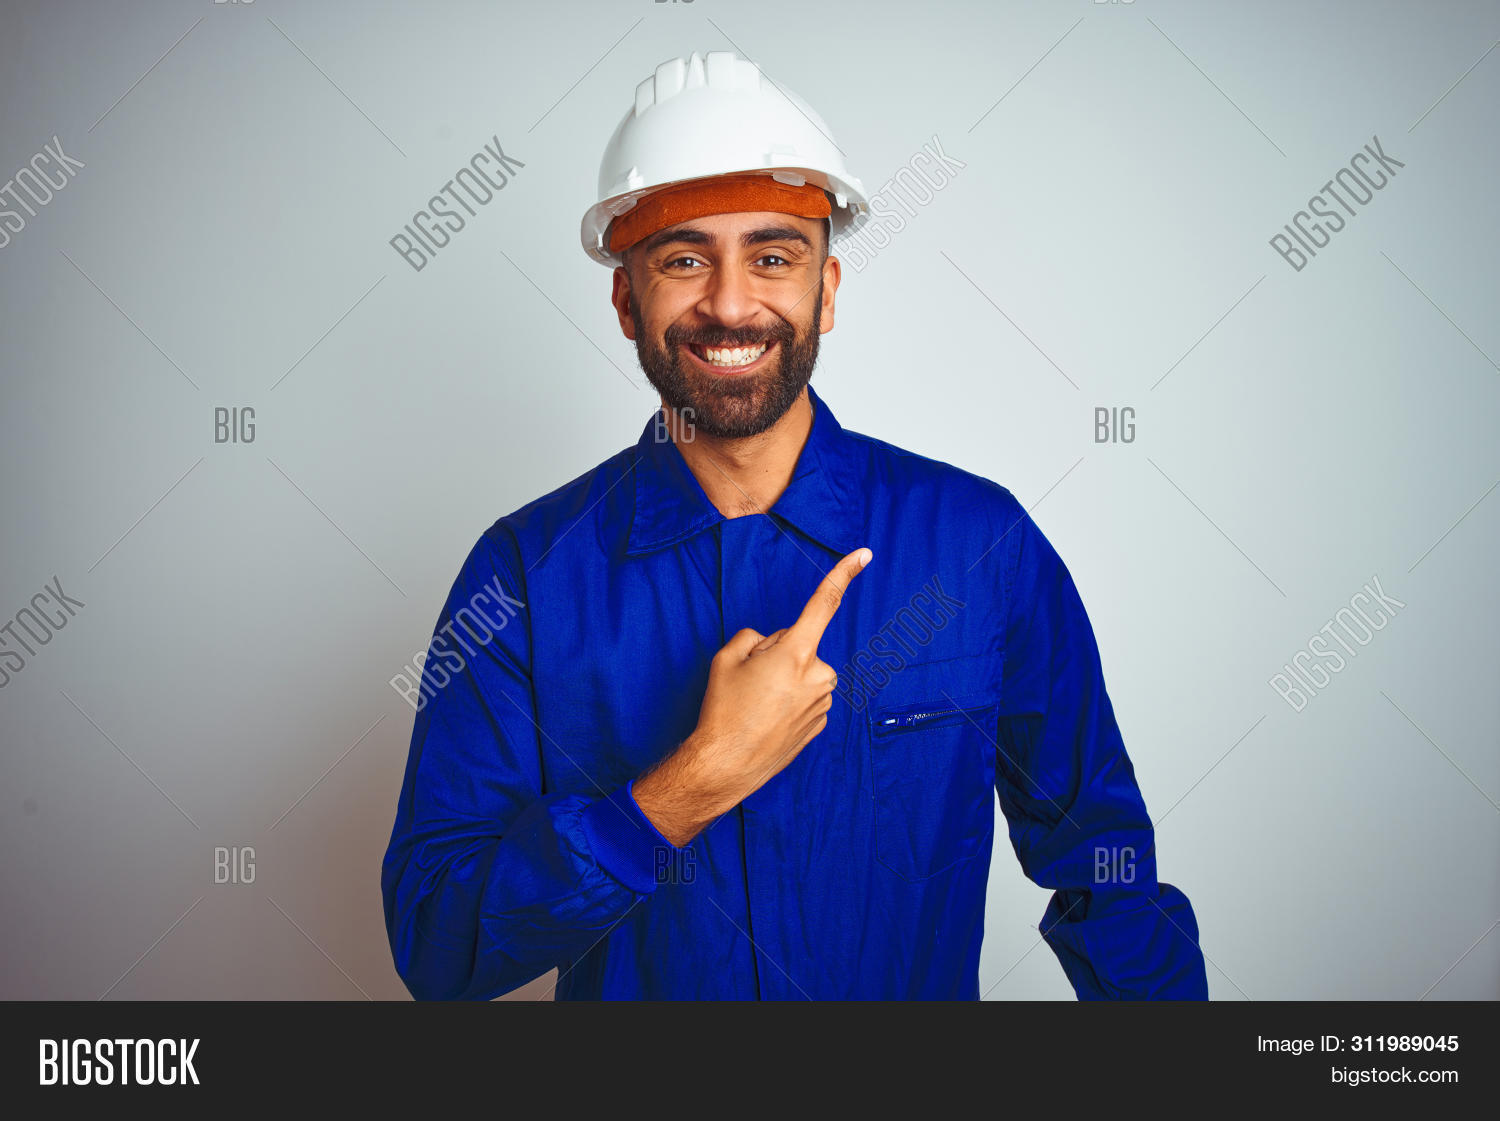 adult,advertisement,arab,background,builder,camera,cheerful,confident,construction,contractor,emotion,engineer,expression,face,finger,fingers,gesture,hand,happy,hardhat,helmet,hispanic,indian,industry,isolated,looking,man,natural,one,person,point,pointing,portrait,presenting,product,safety,showing,side,sign,smile,smiling,space,trust,uniform,up,view,welcome,white,worker,young